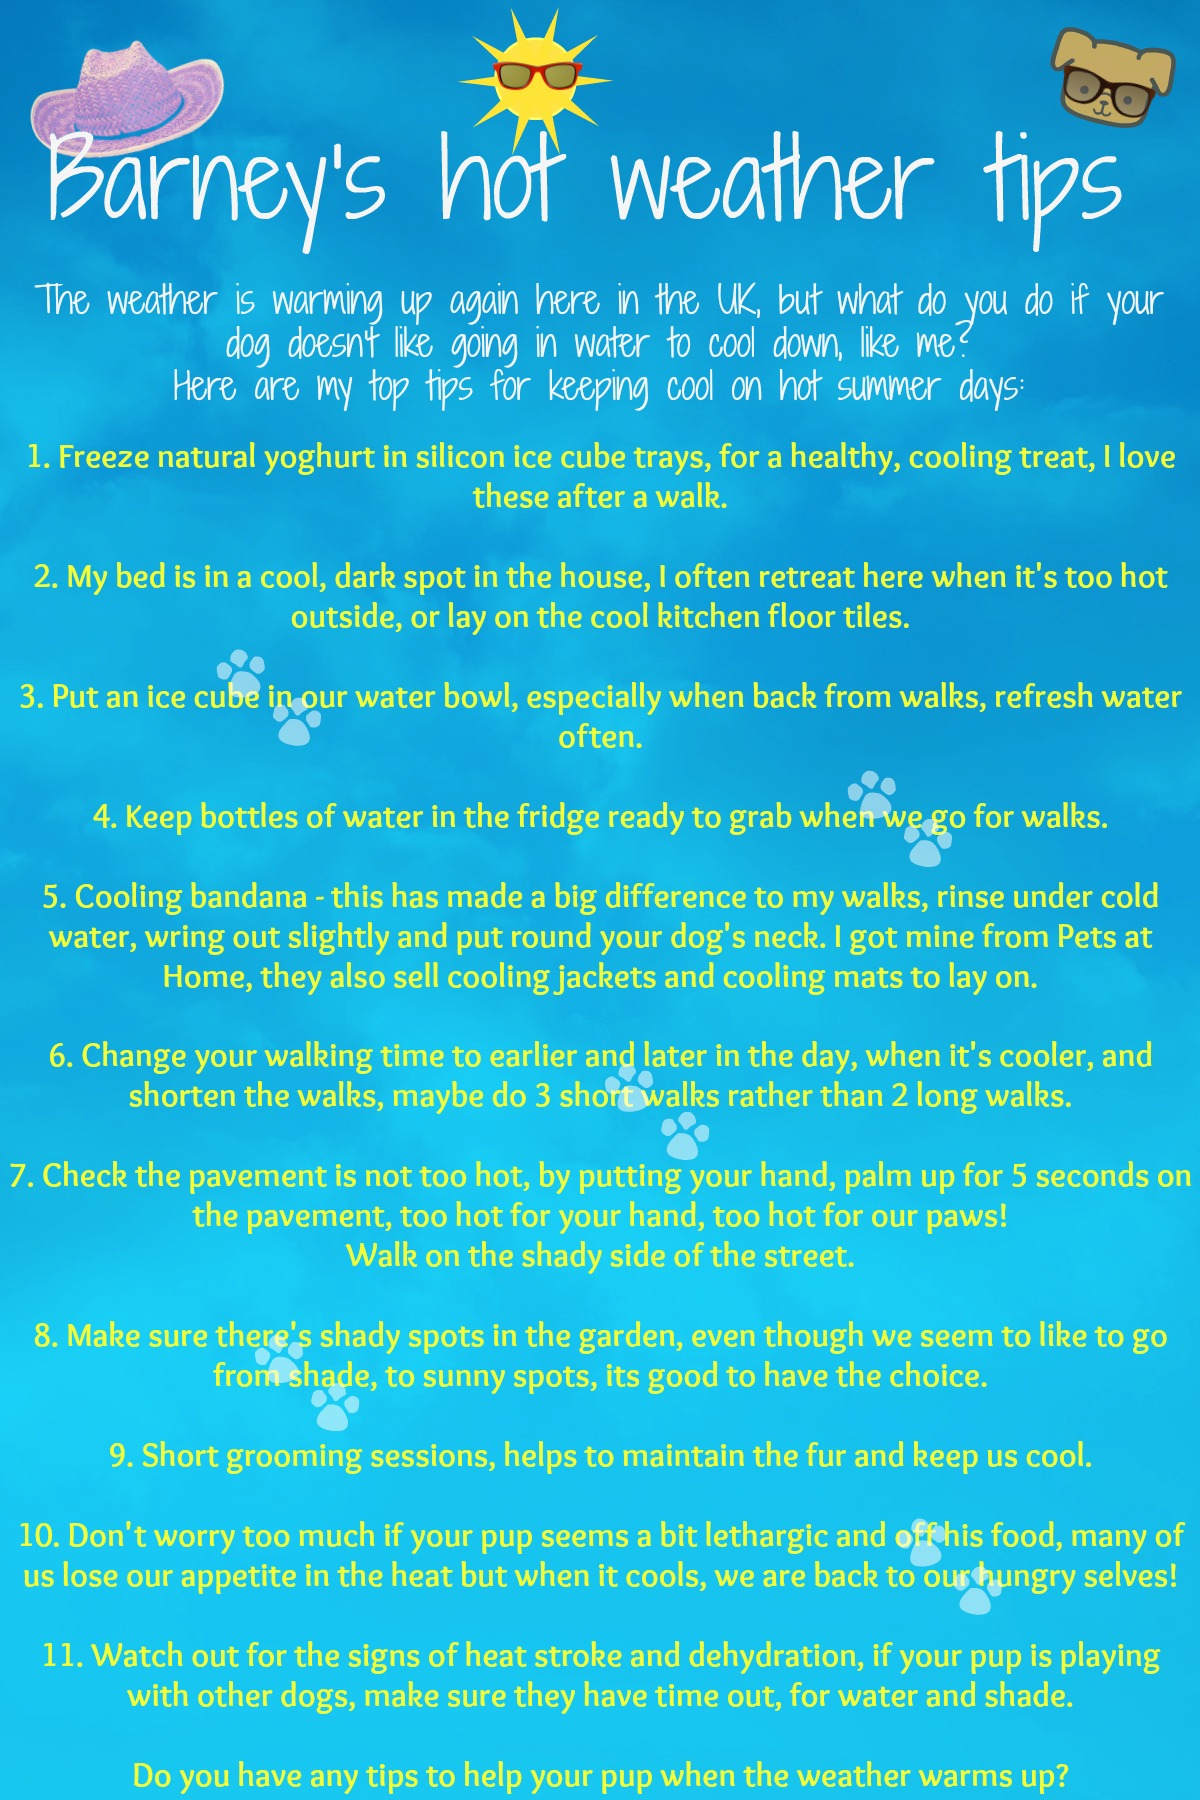 Hot Weather Tips {Summer} #hot www.scruffylittleterrier.com